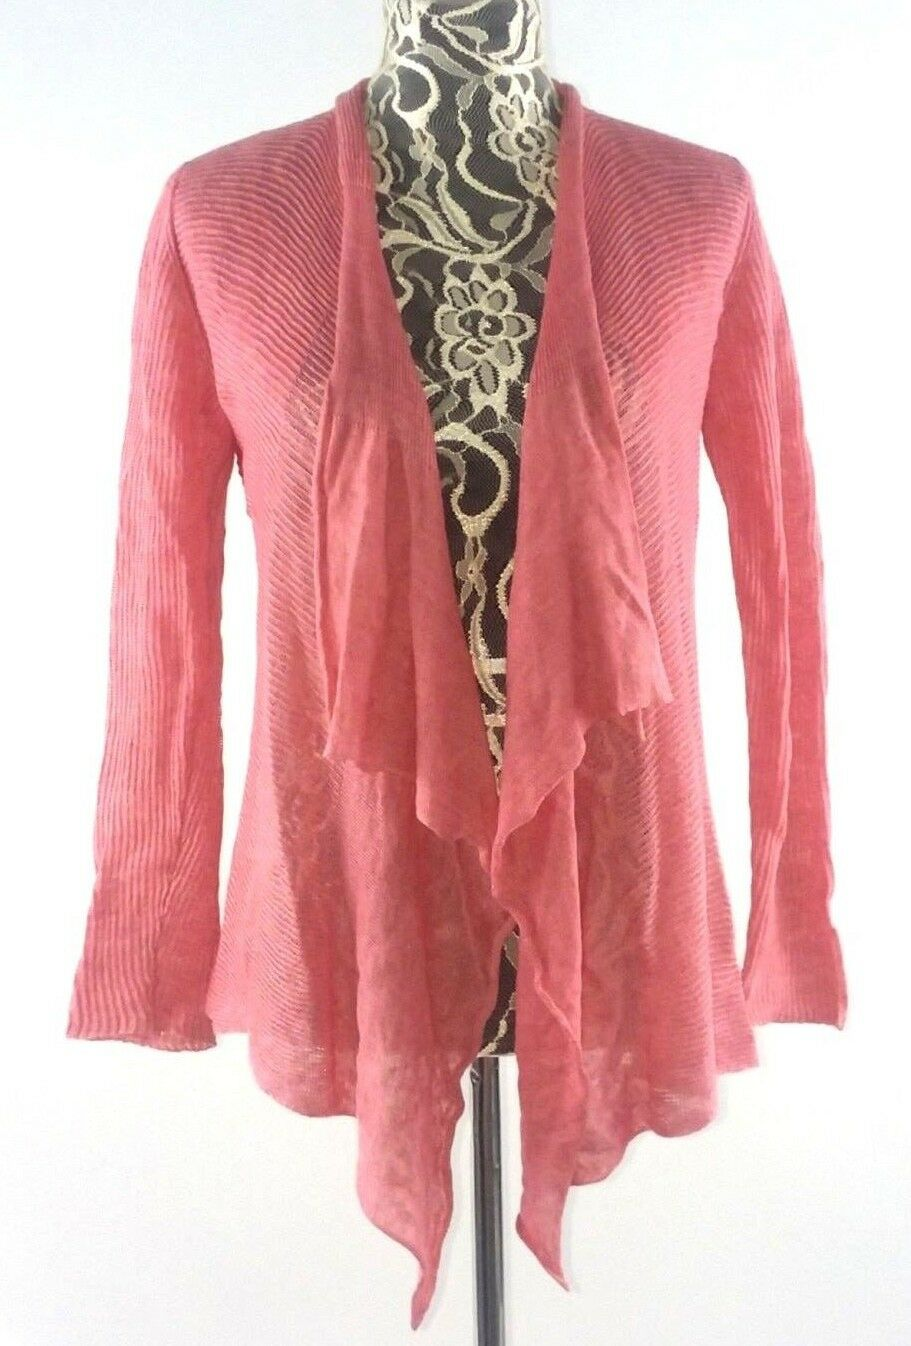 EILEEN FISHER Petite Linen Open Front Cardigan Sweater SMALL Ribbed Pink